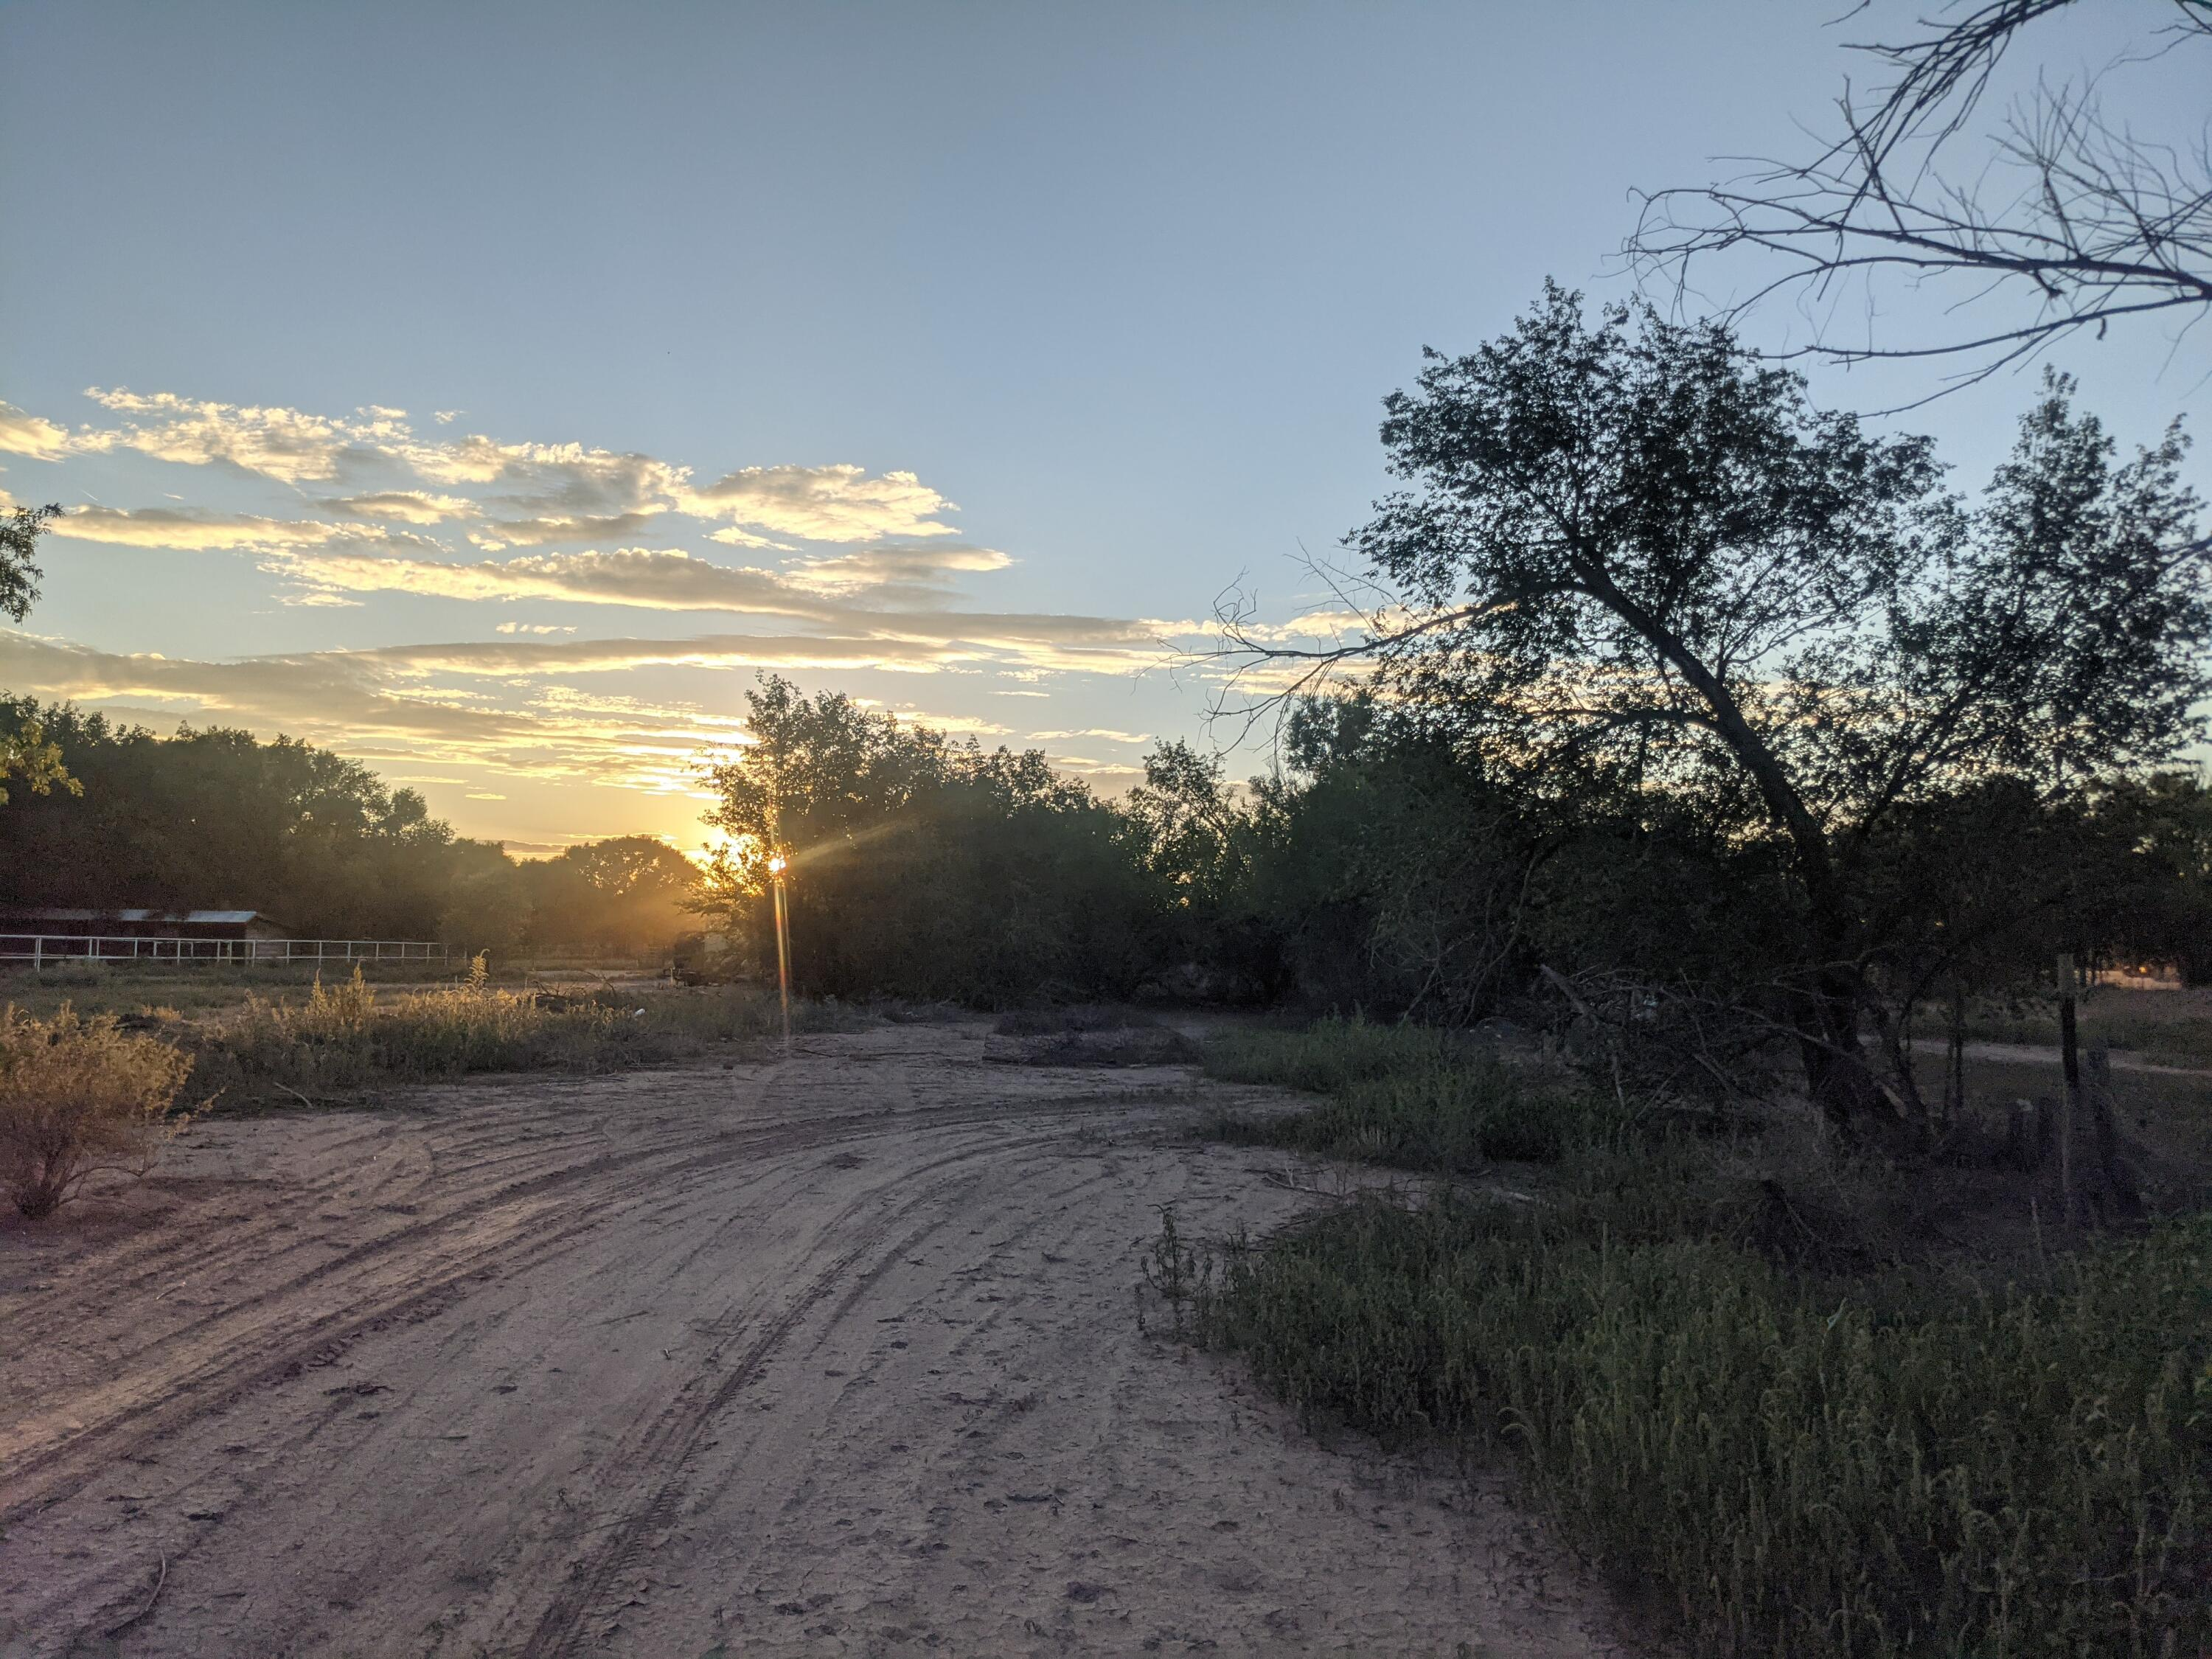 Great opportunity to own a piece of Corrales on Corrales Road! Views of the Sandia Mountains! Property sold as-is, where-is with no warranties expressed or implied. Do not enter home or buildings. Call your agent for more information or questions.